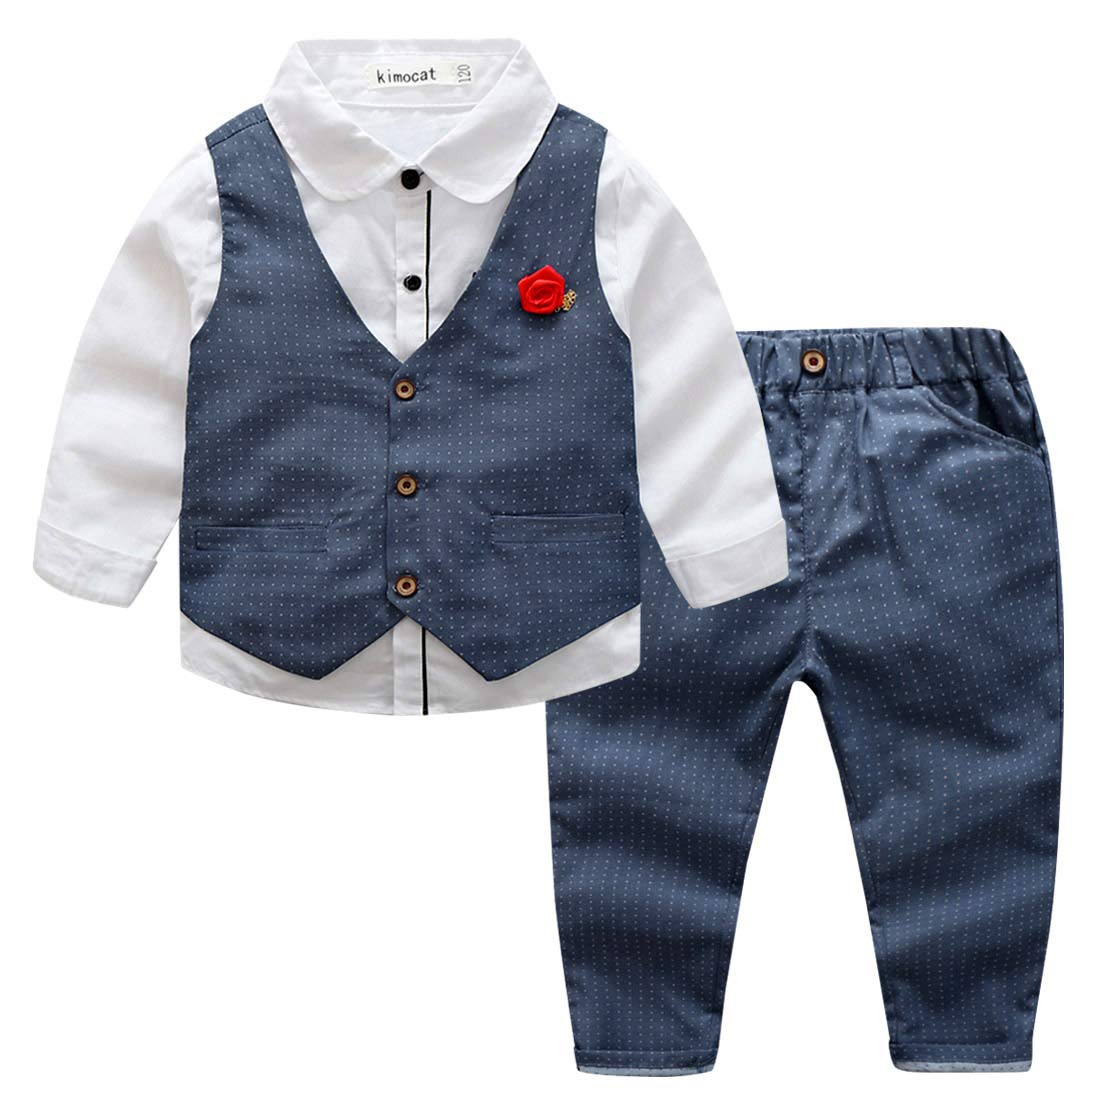 Kid Boys 3pcs Wedding Suit Classic Gentle Clothing Set Cotton Fully Lined Formal Tuxedo Wear with Dots Pattern, 5Y